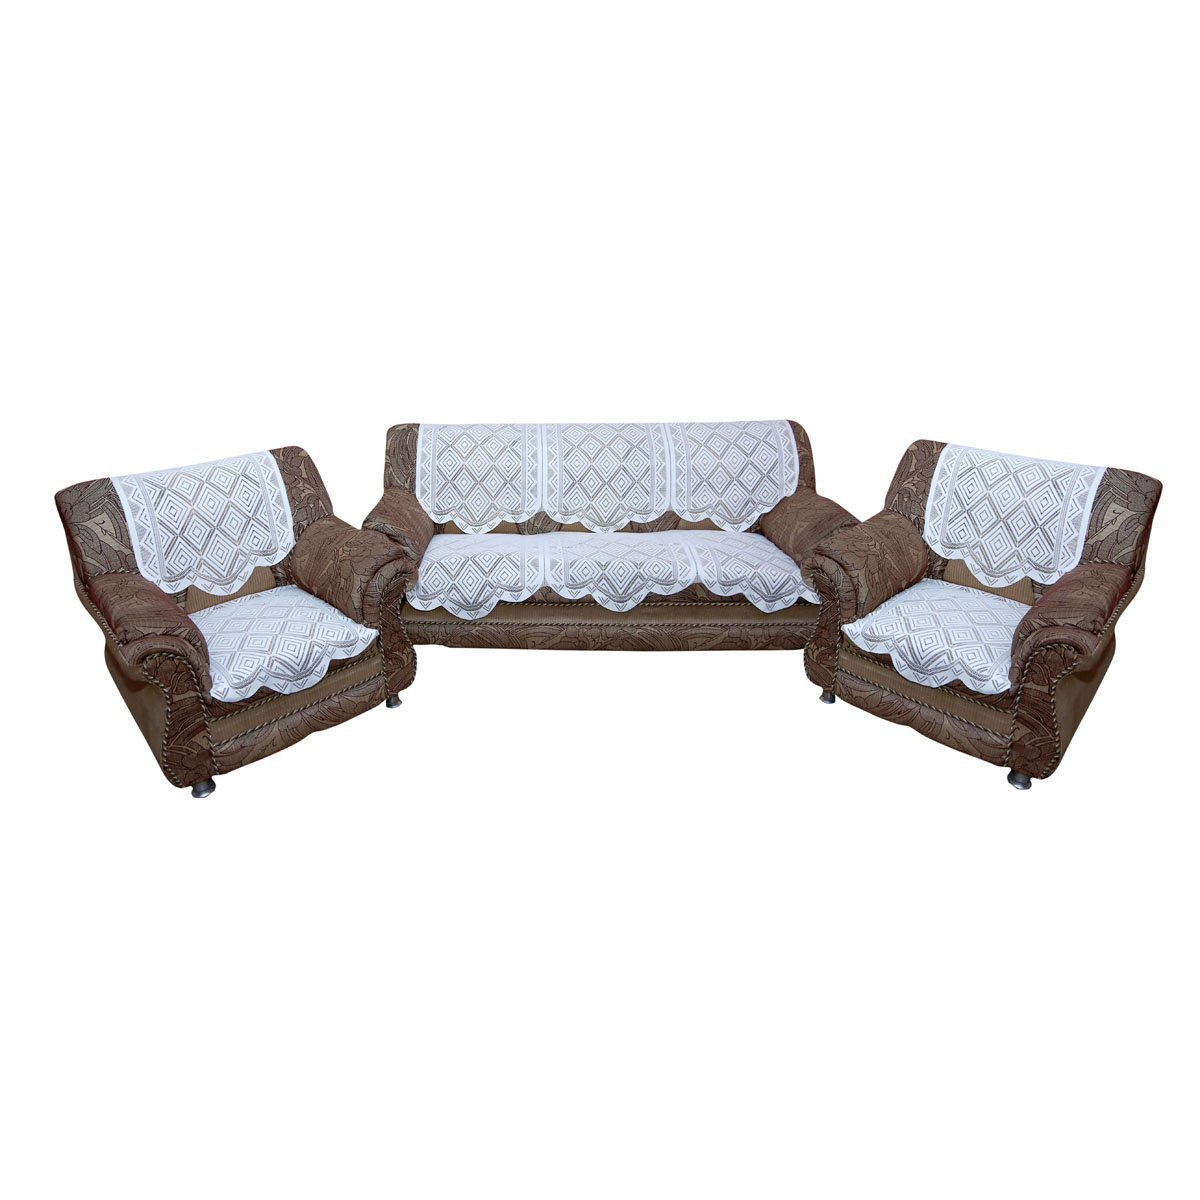 fabindia sofa designs refil sofa design living room online Buy Kuber IndustriesTM White 5 Seater Net Sofa Cover Set -10 Pieces (Self  Design) Code-VA82103 Online at Low Prices in India - Amazon.in